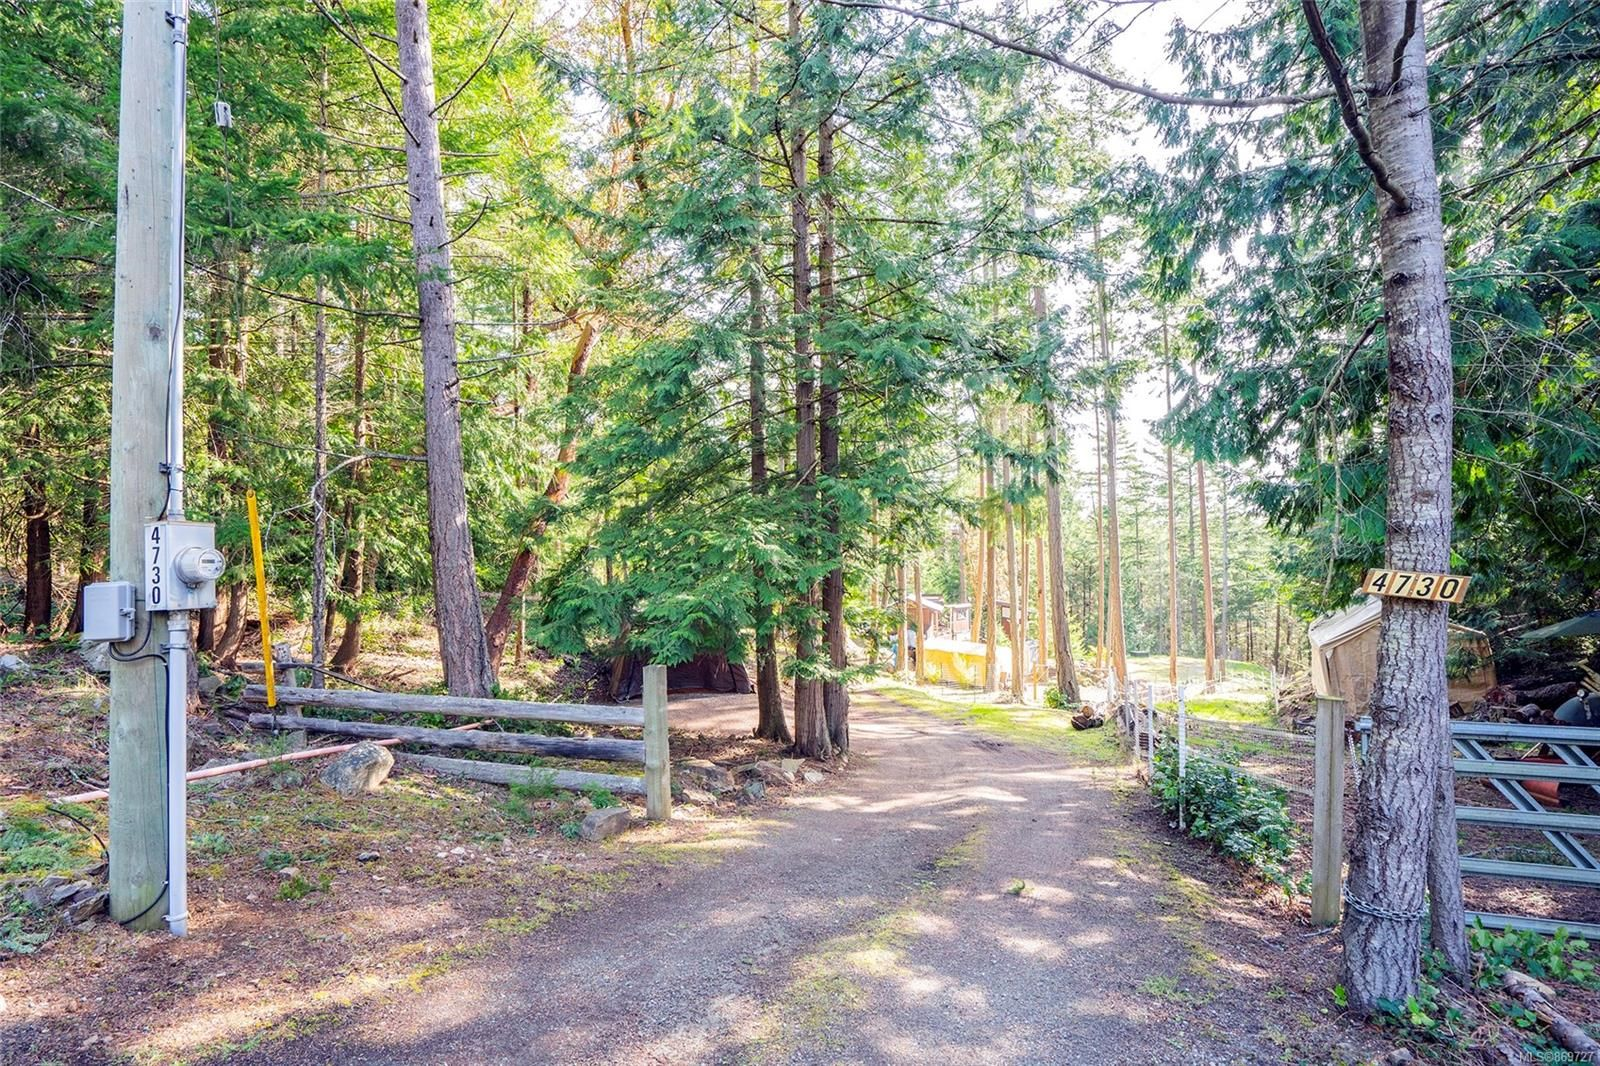 Main Photo: 4730 Captains Cres in : GI Pender Island House for sale (Gulf Islands)  : MLS®# 869727